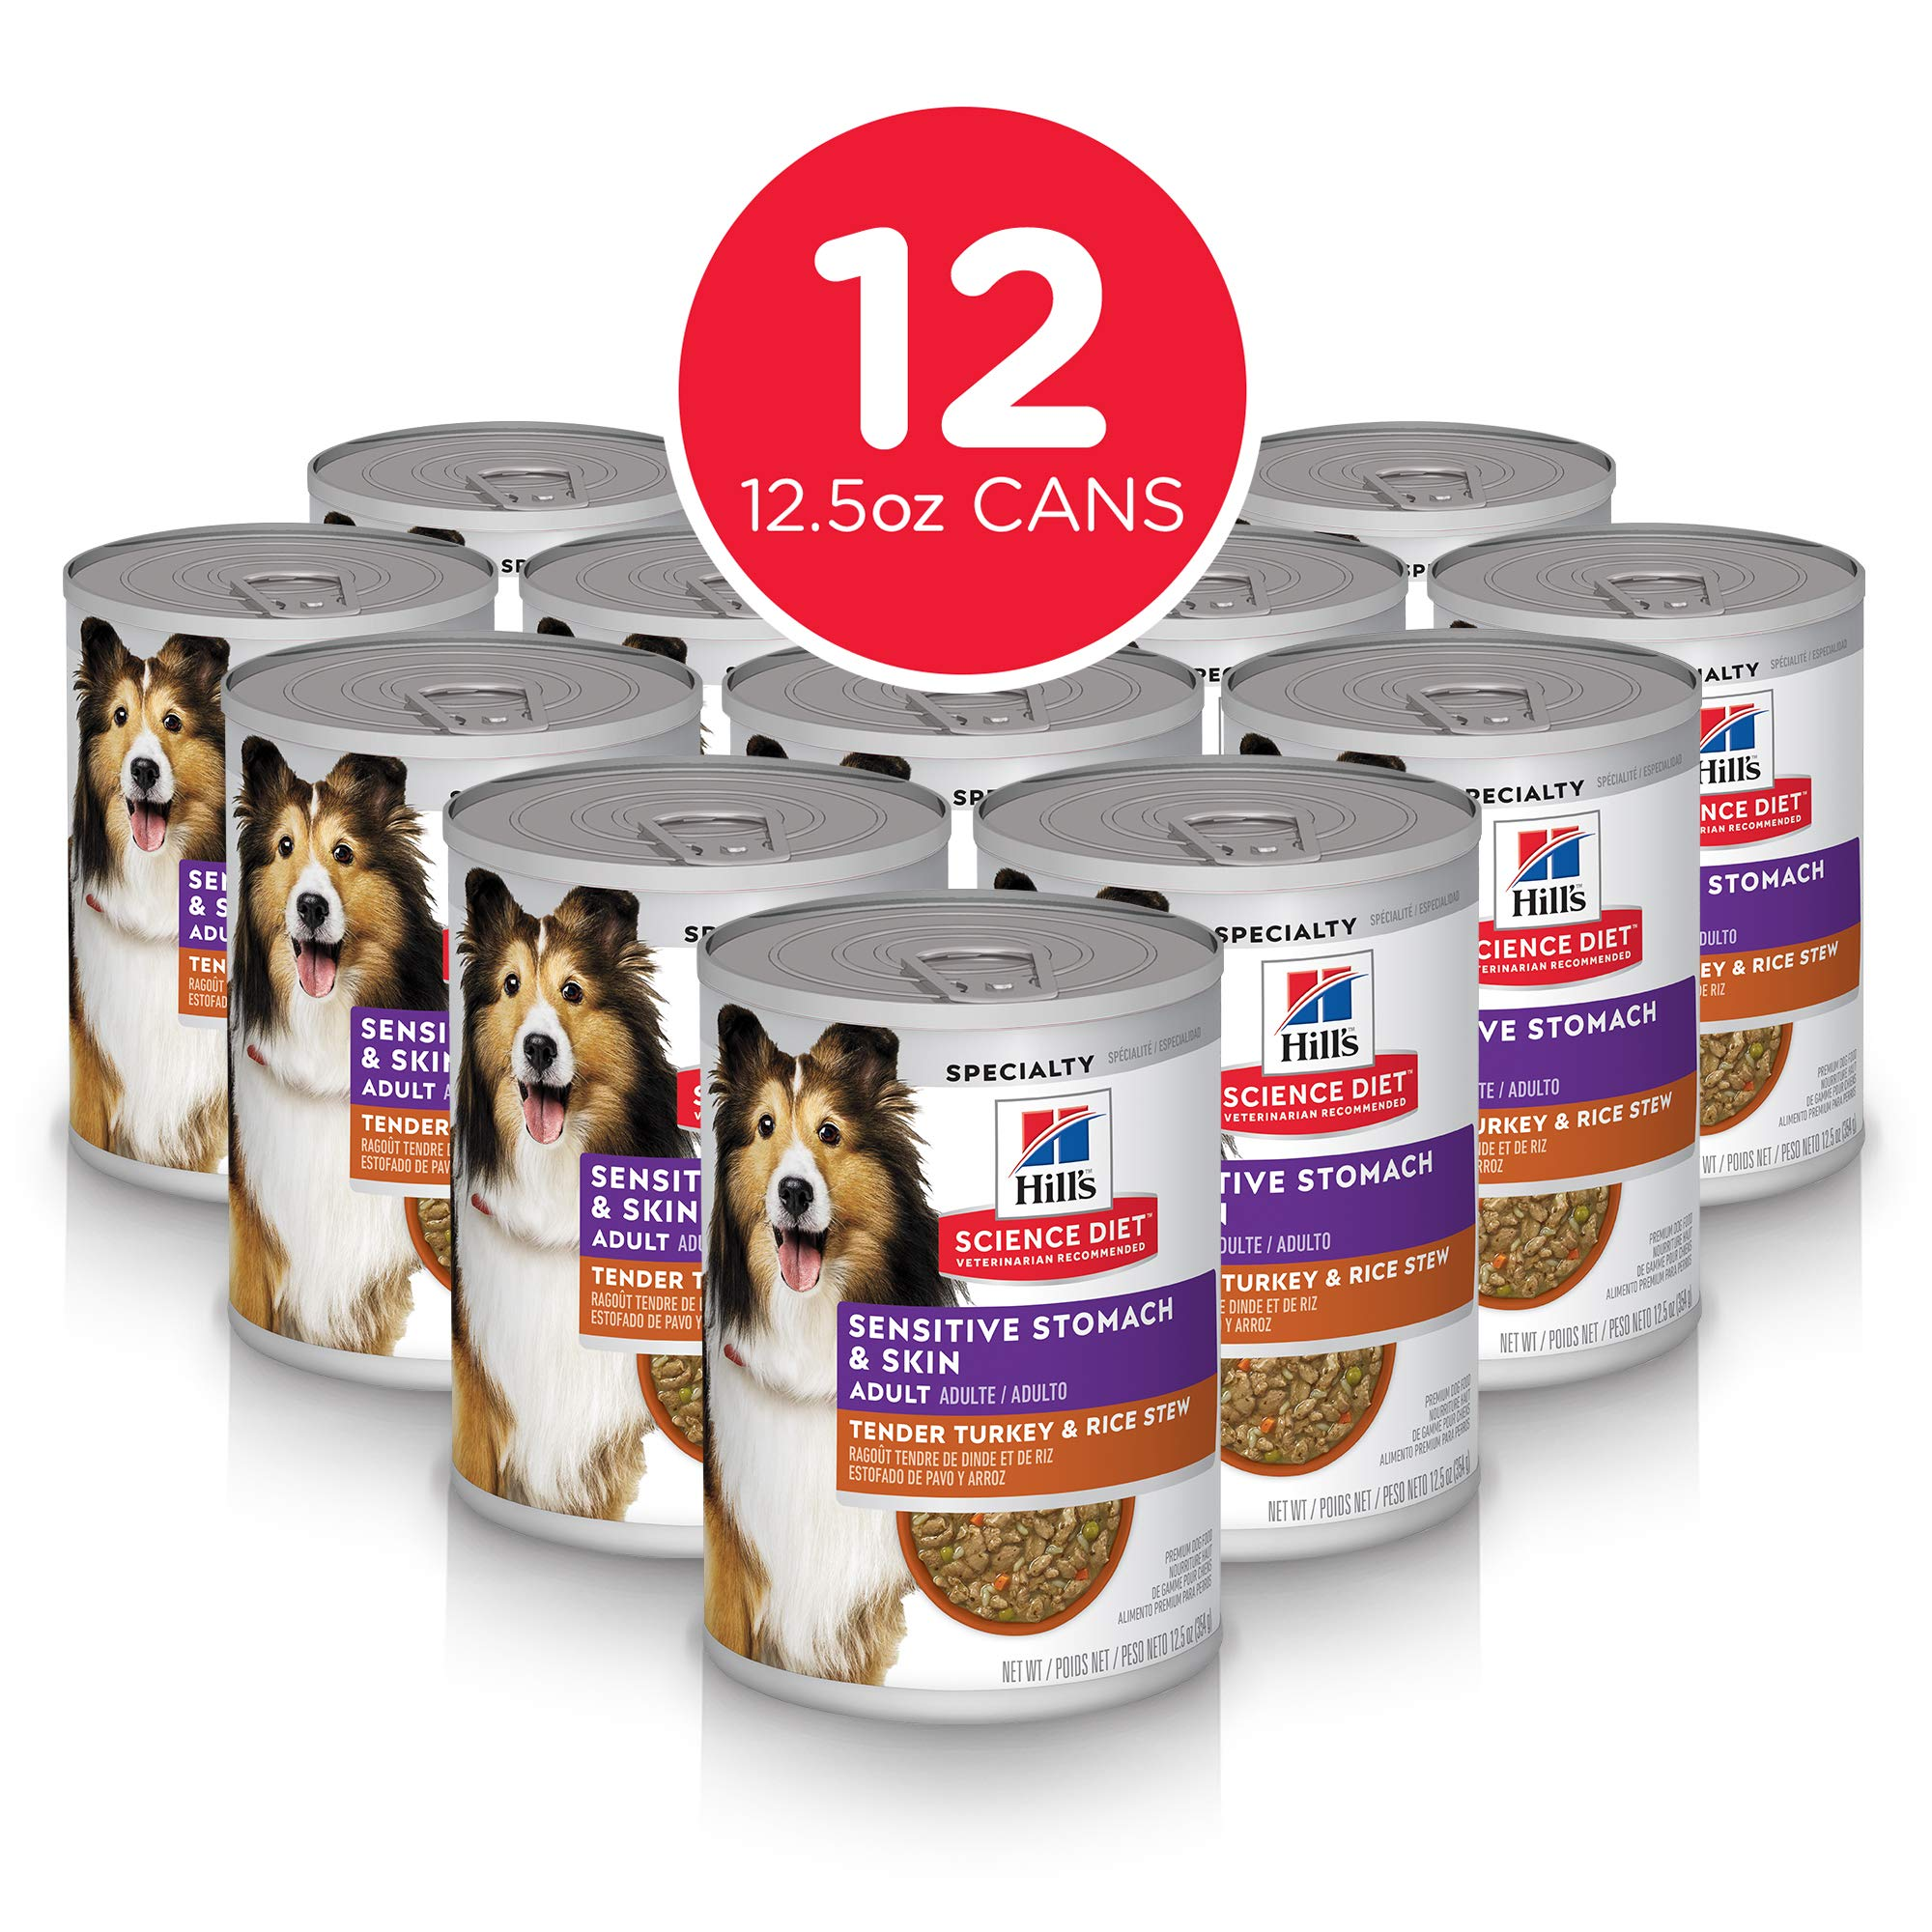 Hill's Science Diet Wet Dog Food, Adult, Sensitive Stomach & Skin, Tender Turkey & Rice Stew, 12.5 oz, 12-pack by Hill's Science Diet